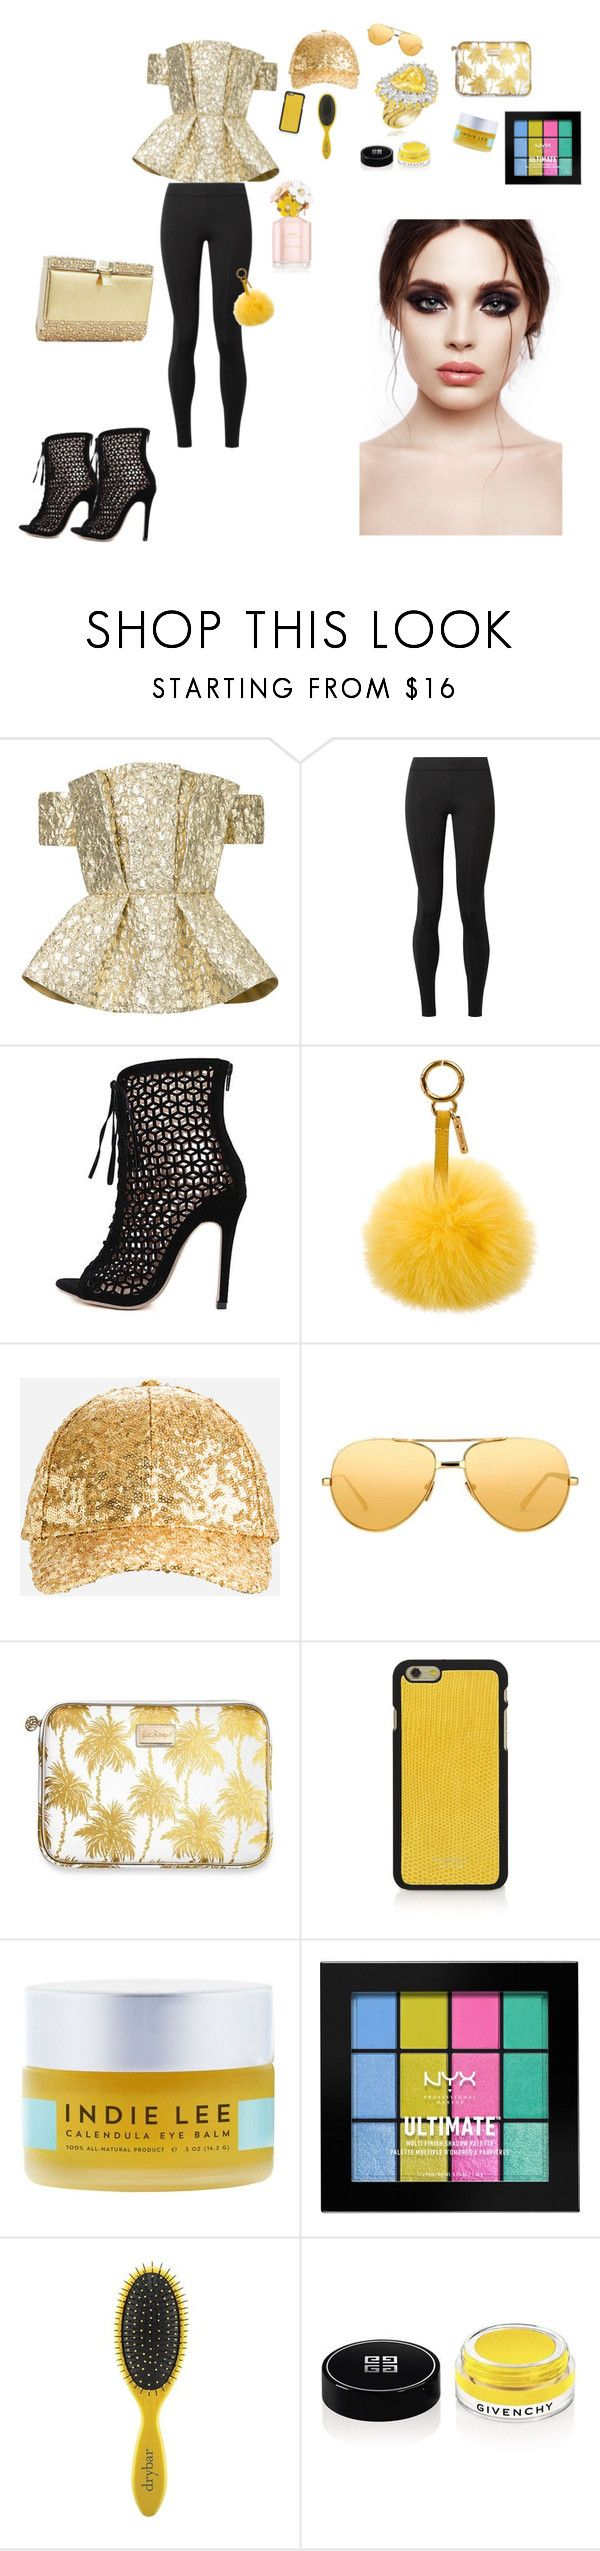 """Bez naslova #80"" by hilda-vi ❤ liked on Polyvore featuring Bambah, The Row, Zoe Adams, Fendi, Ashley Stewart, Lilly Pulitzer, Vianel, Indie Lee, NYX and Drybar"